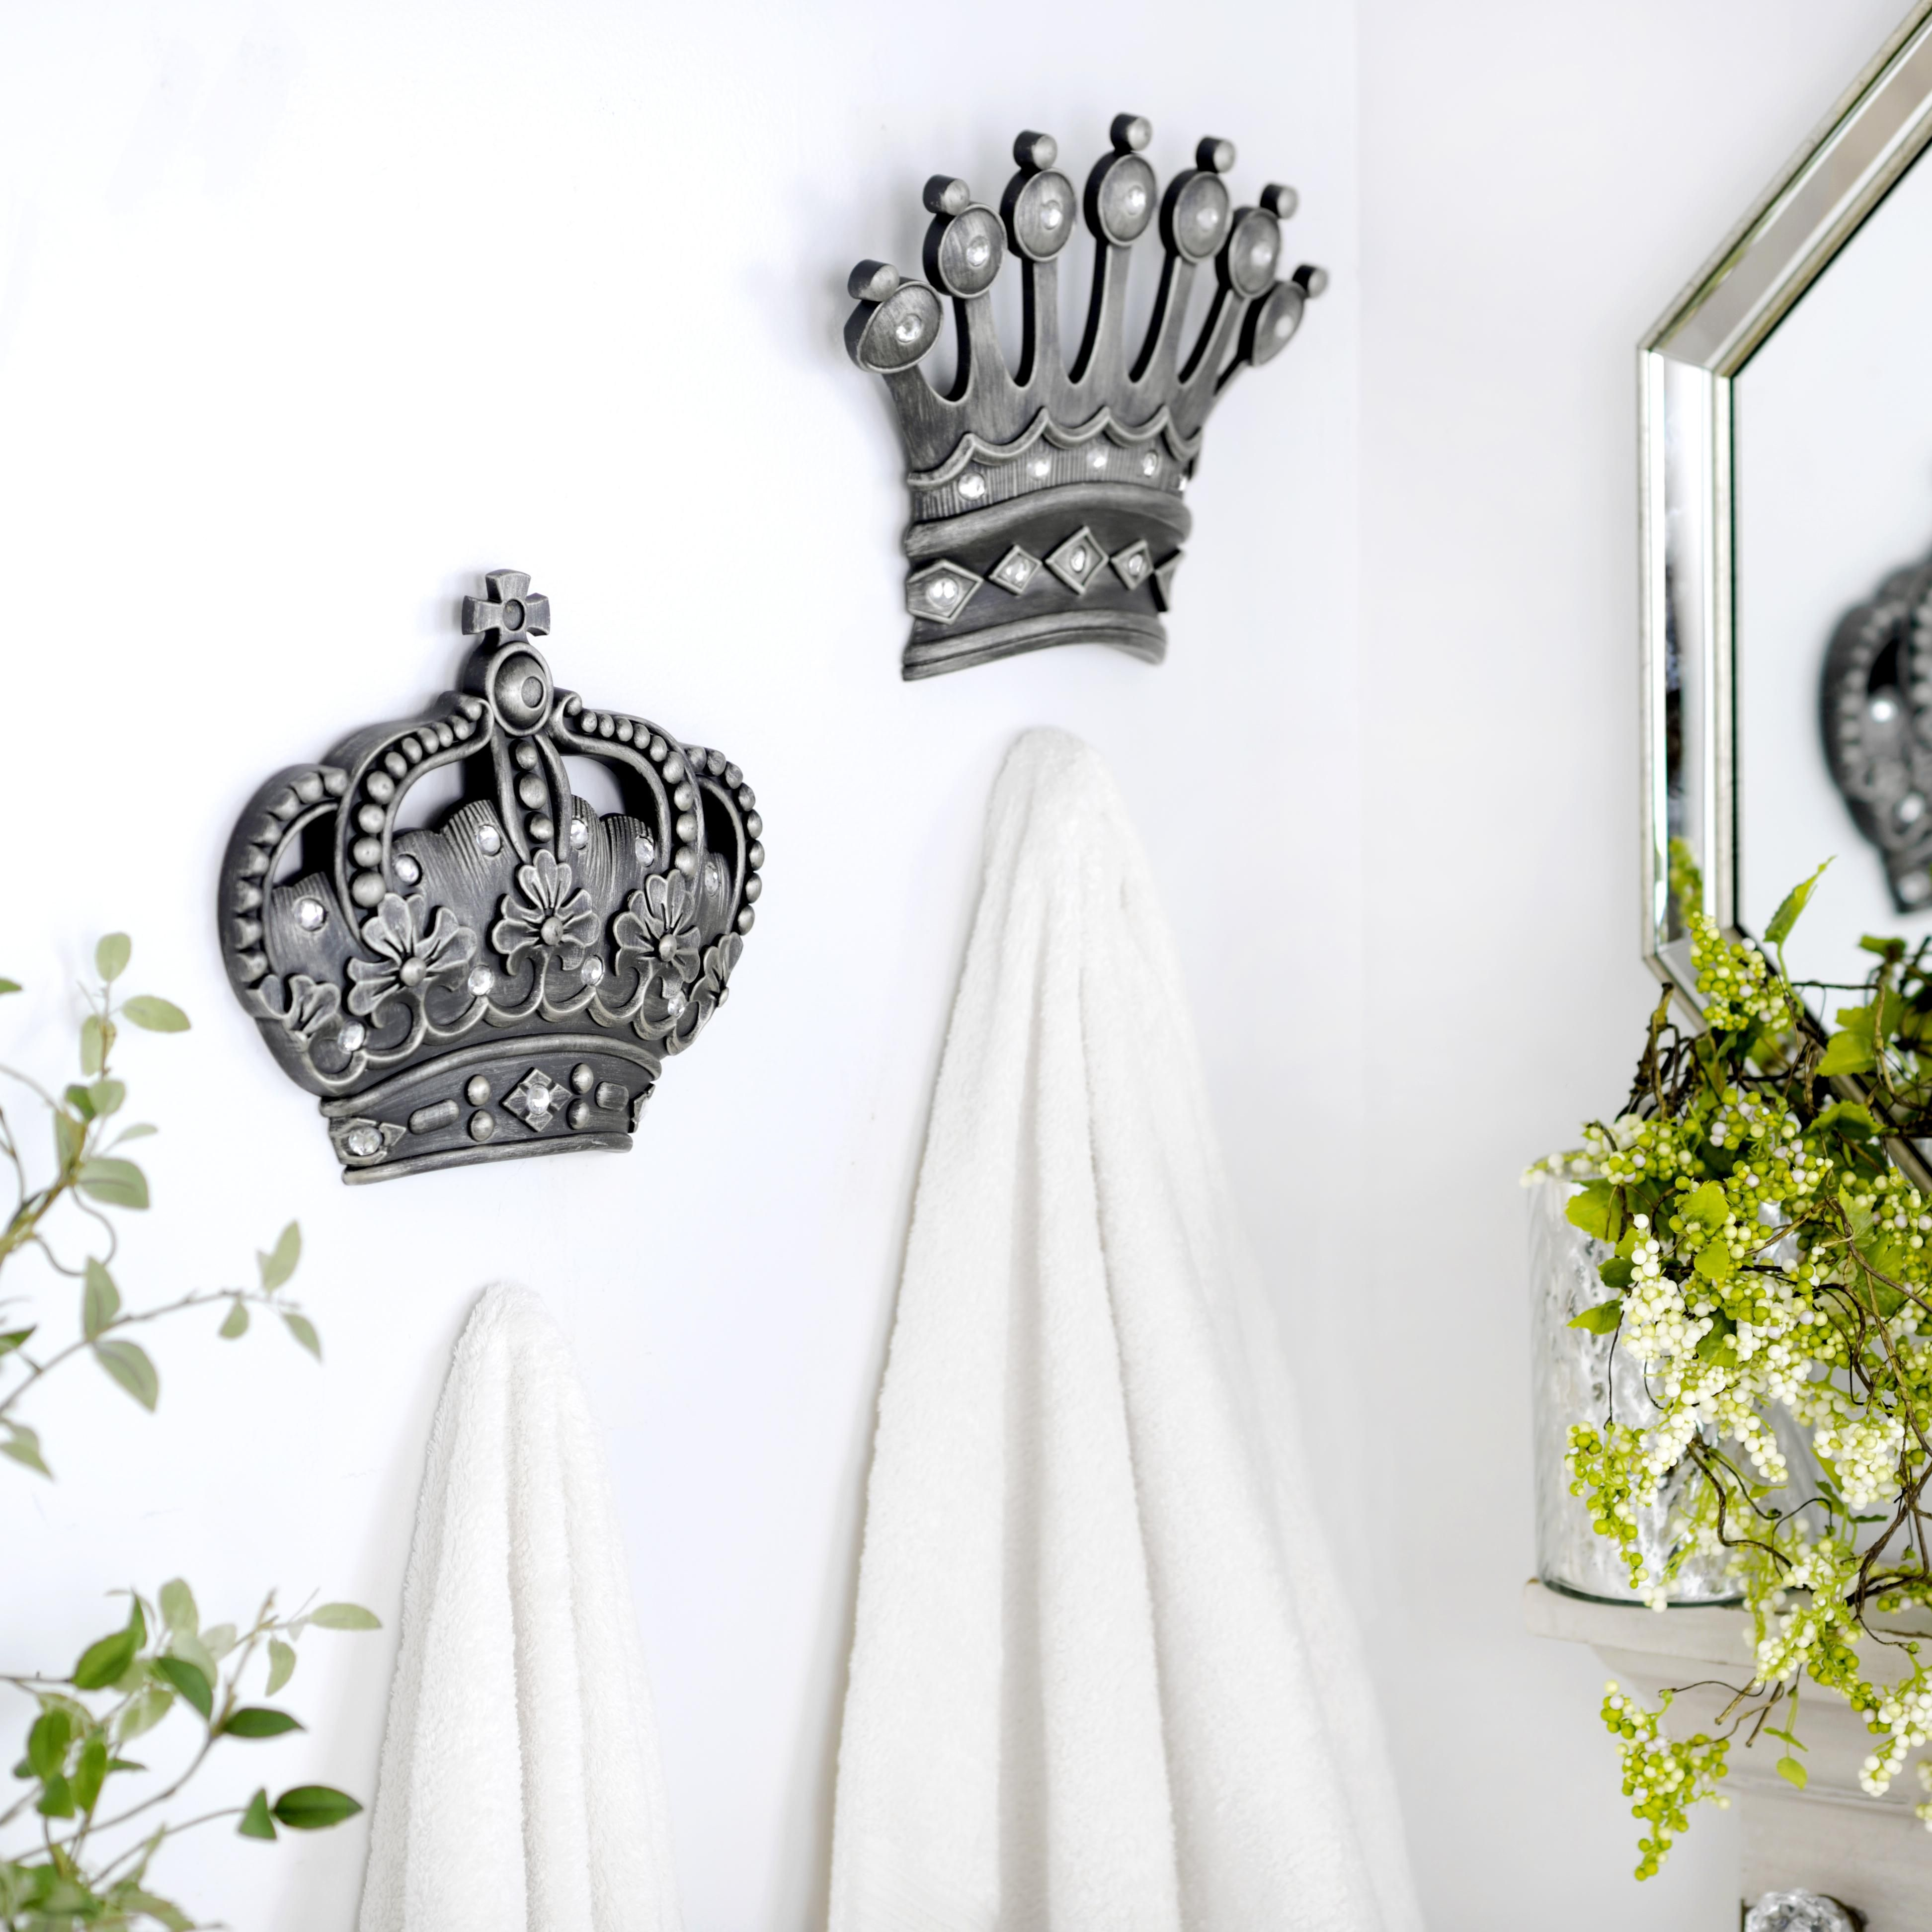 Embrace Your Royal Side With Our His & Her Crown Silver